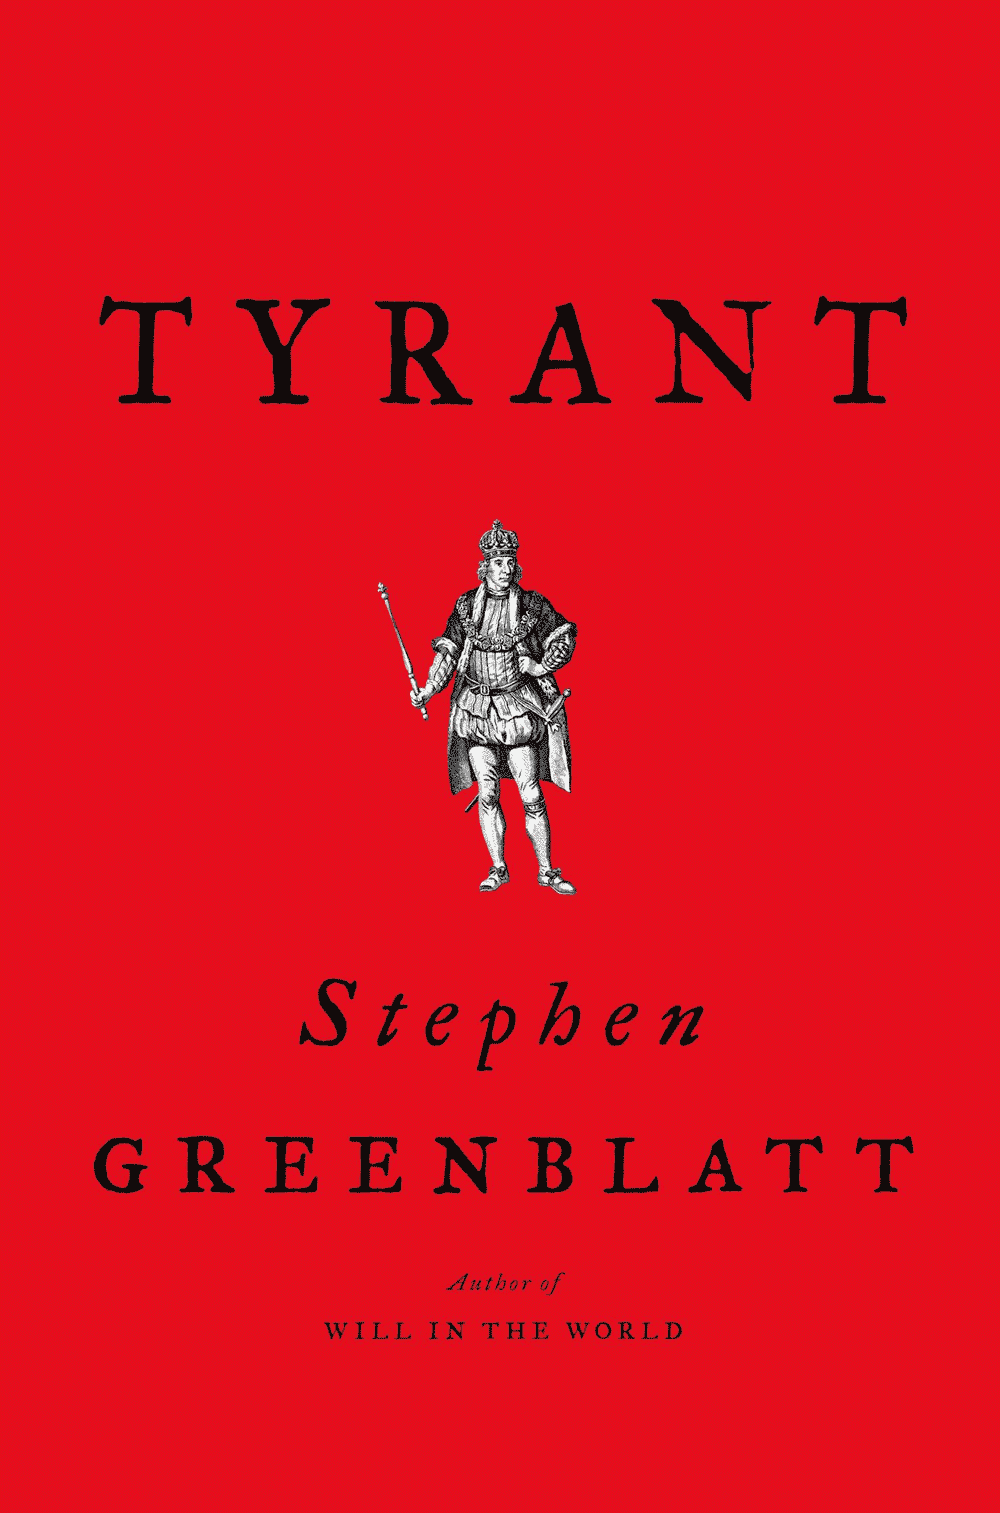 'Tyrant' by Stephen Greenblatt